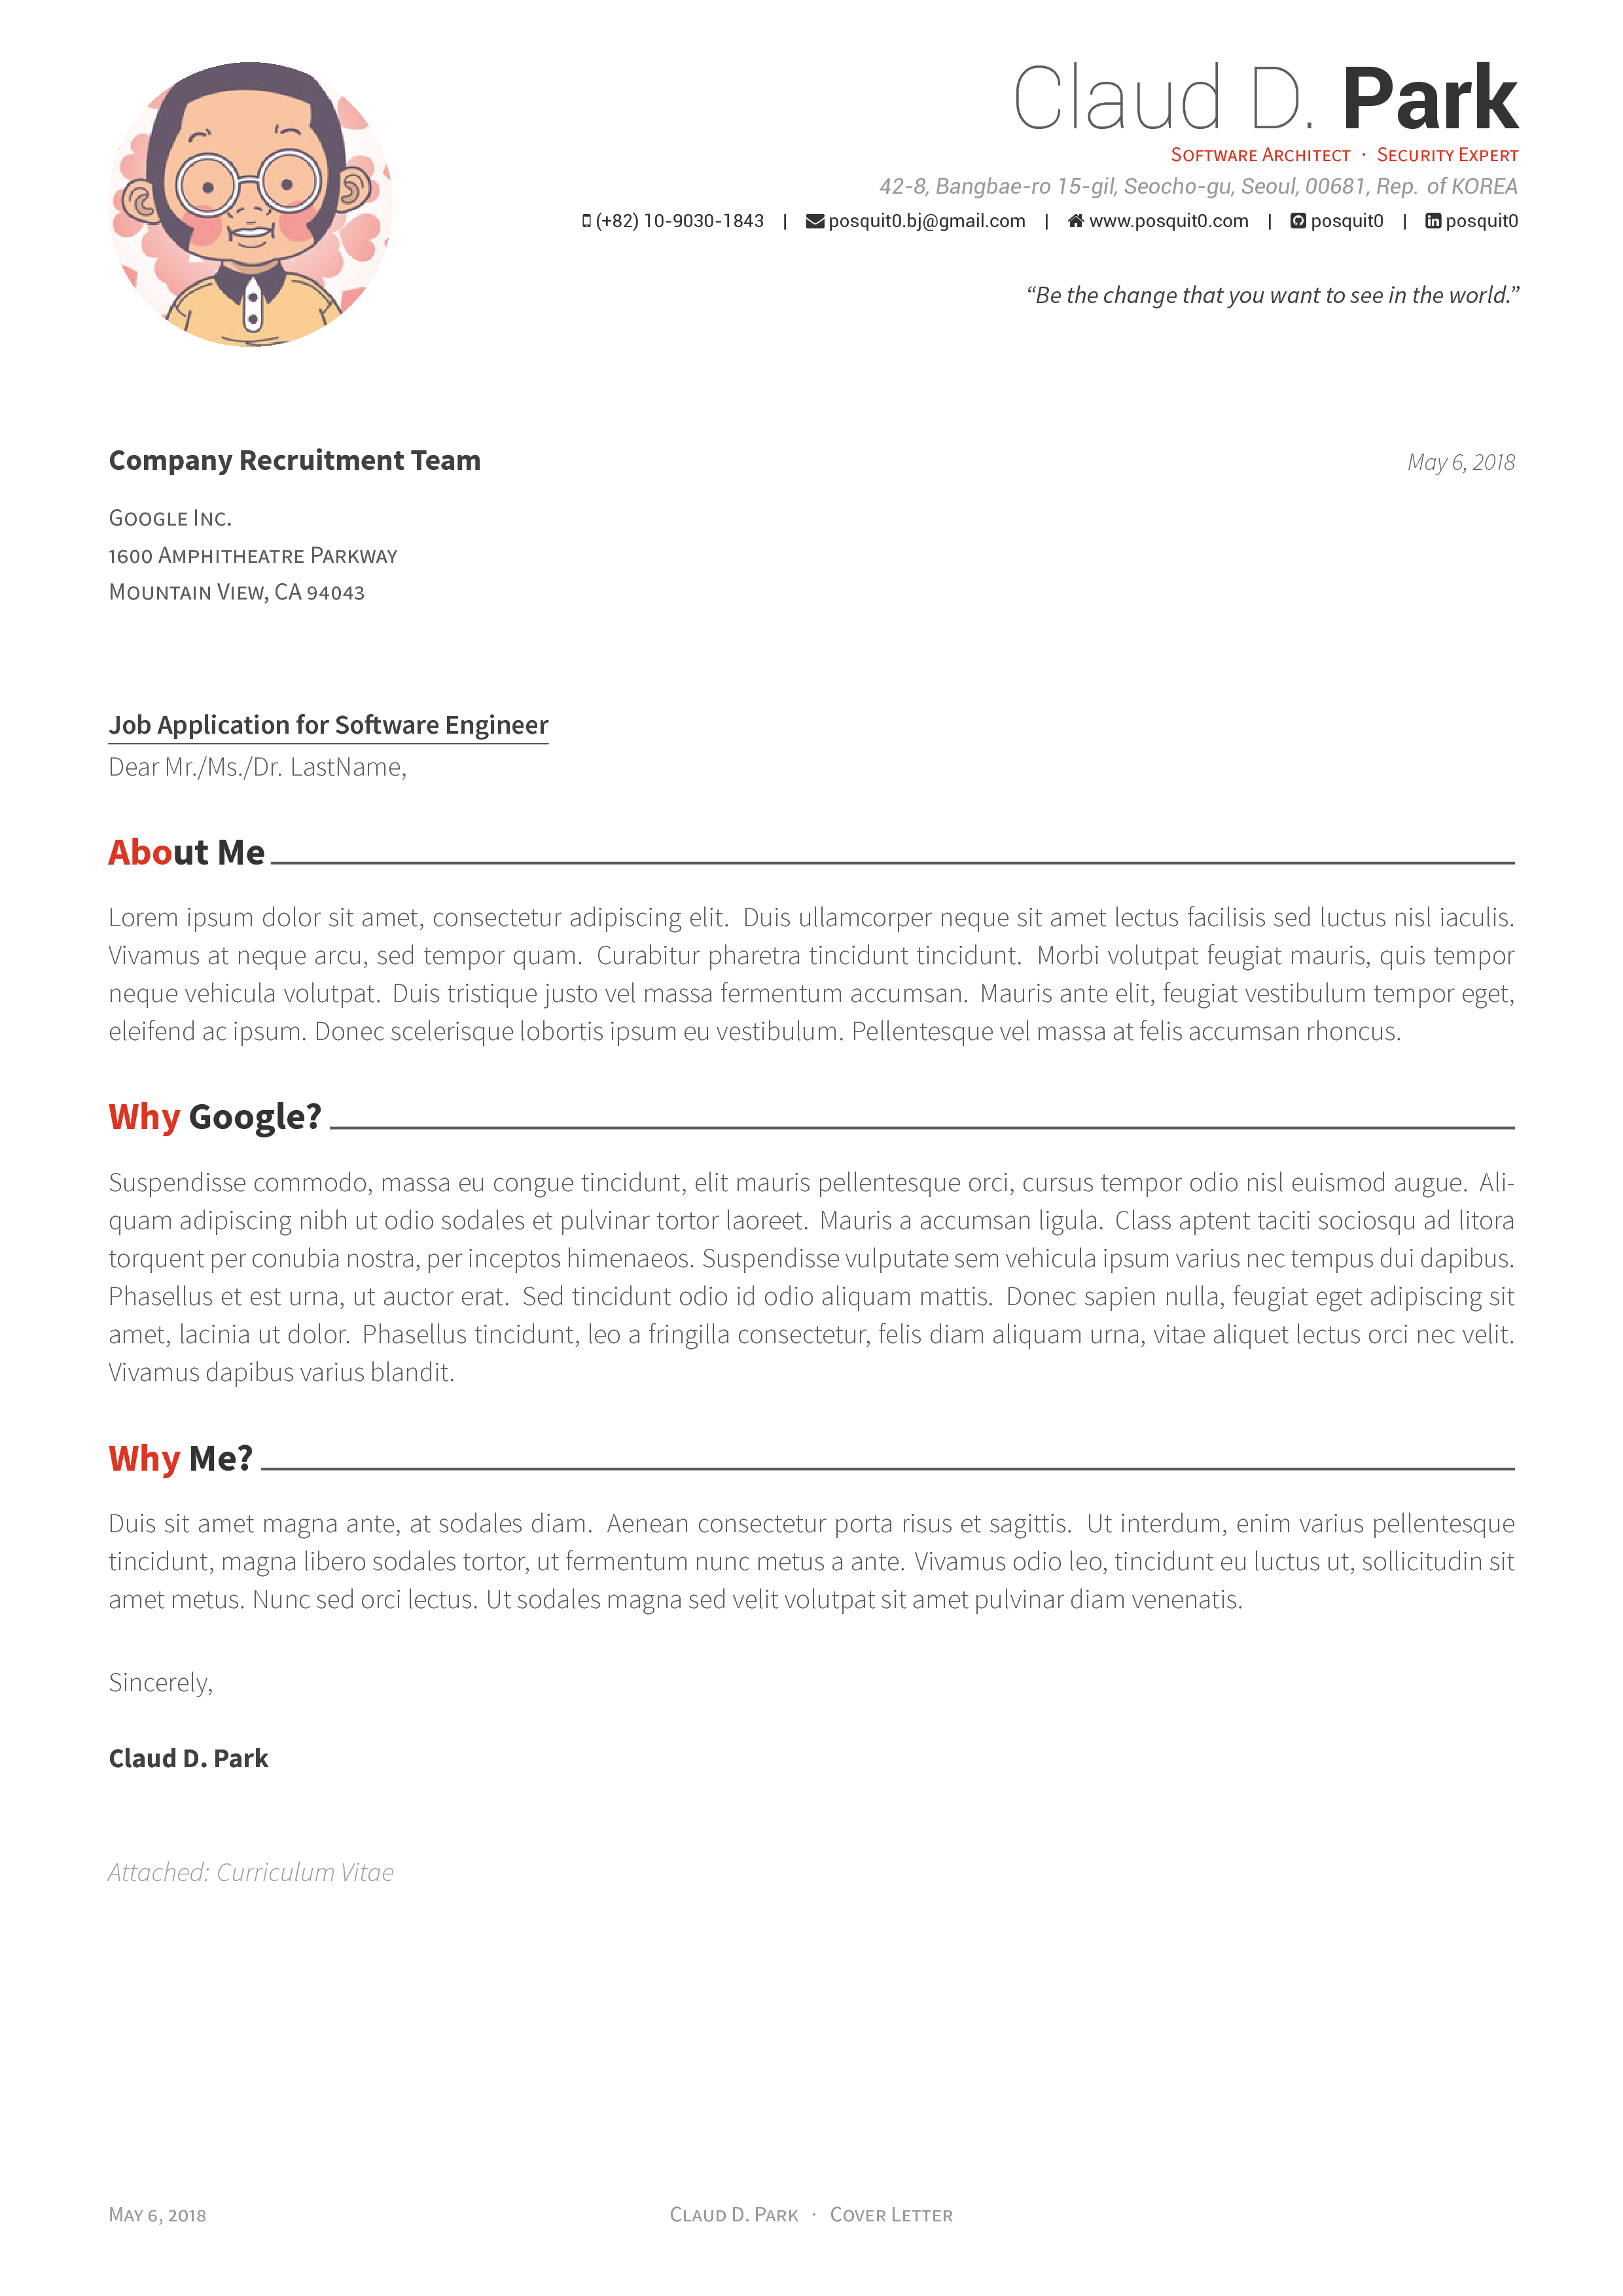 cover lettertraditional cover letterawesome - Cover Letter And Resume Template